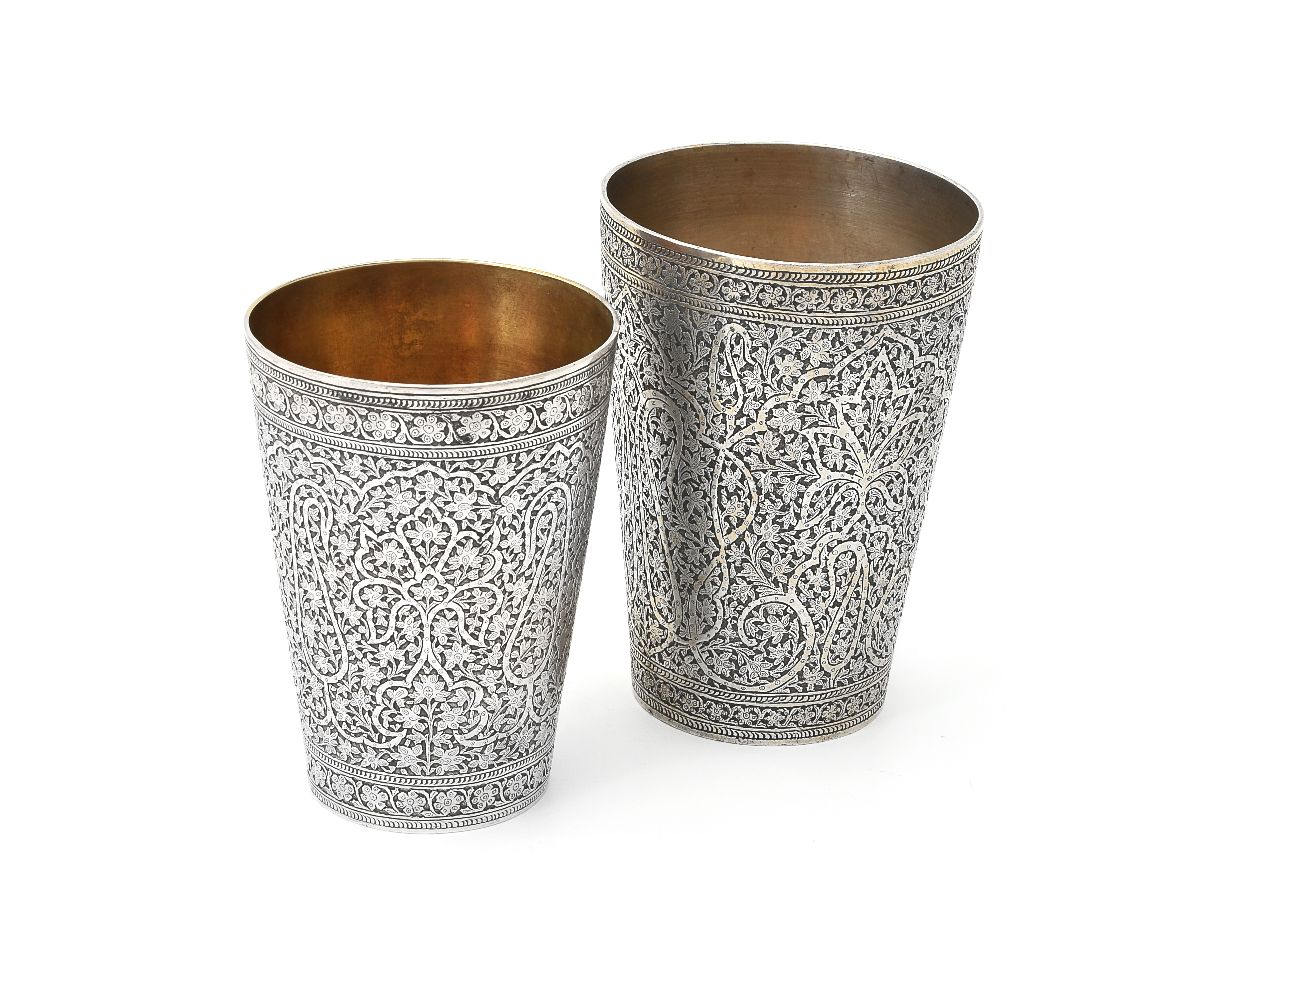 Lot 657 - Two Indian silver tapered beakers